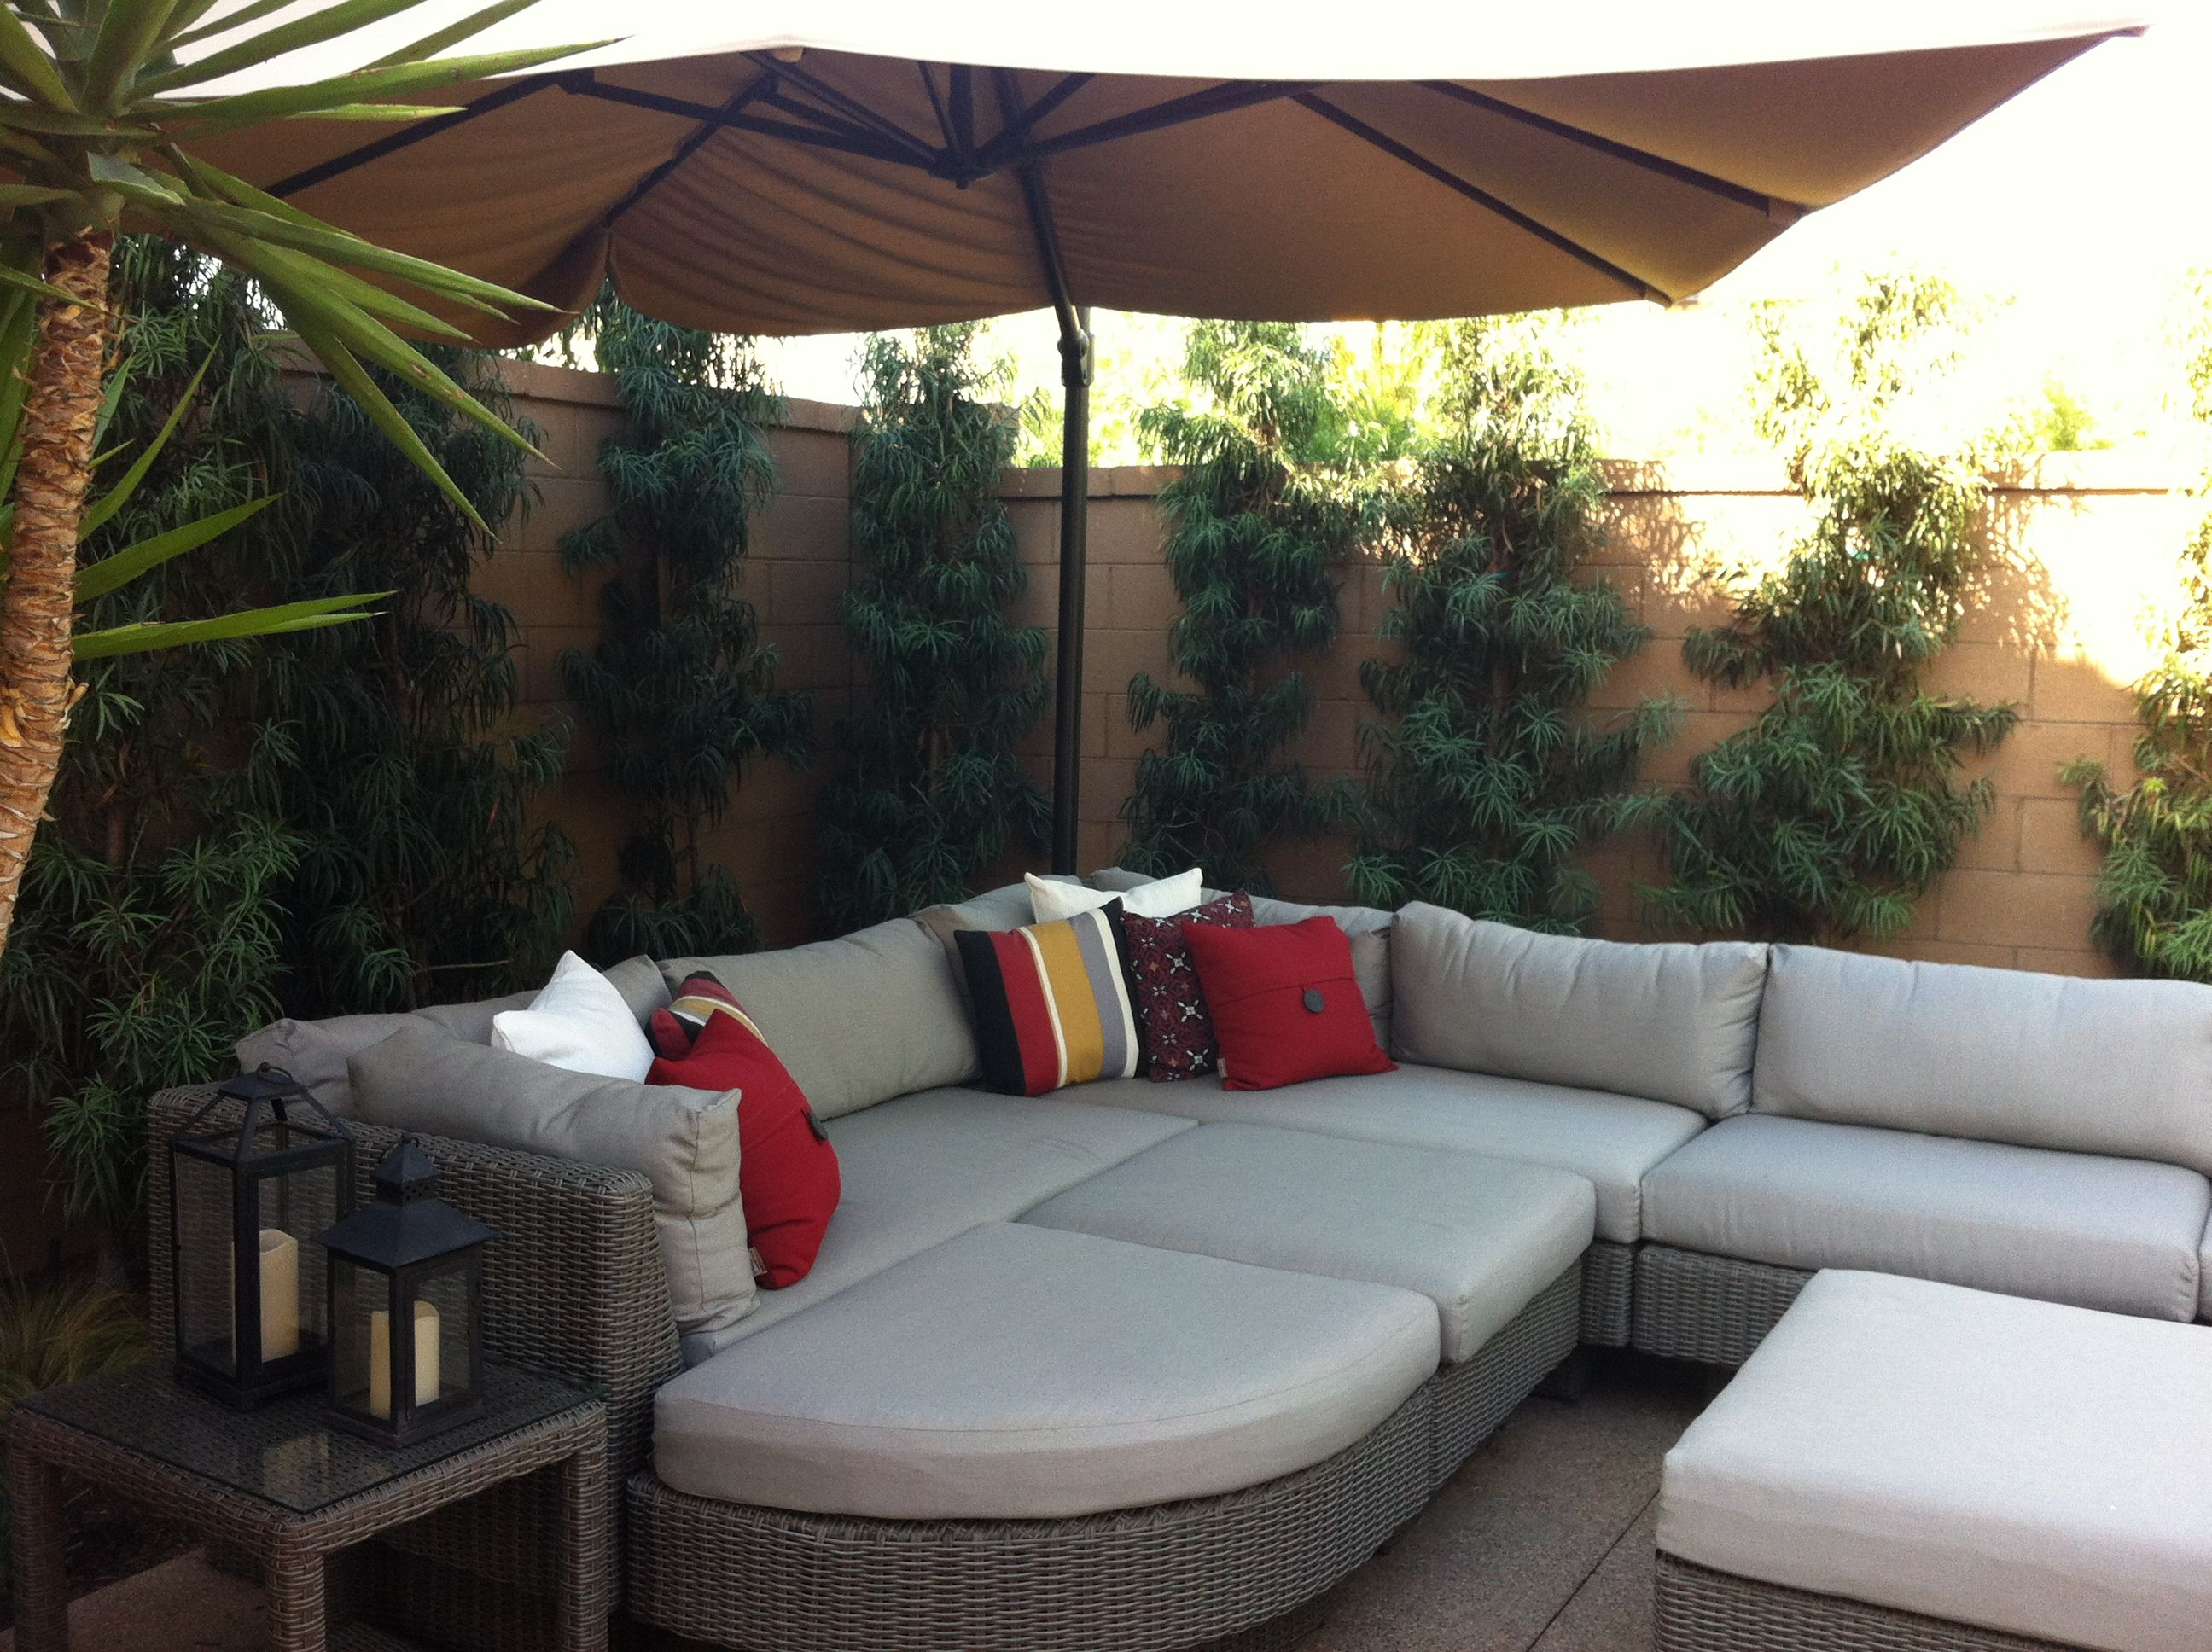 Great outdoor furniture for a big gathering!